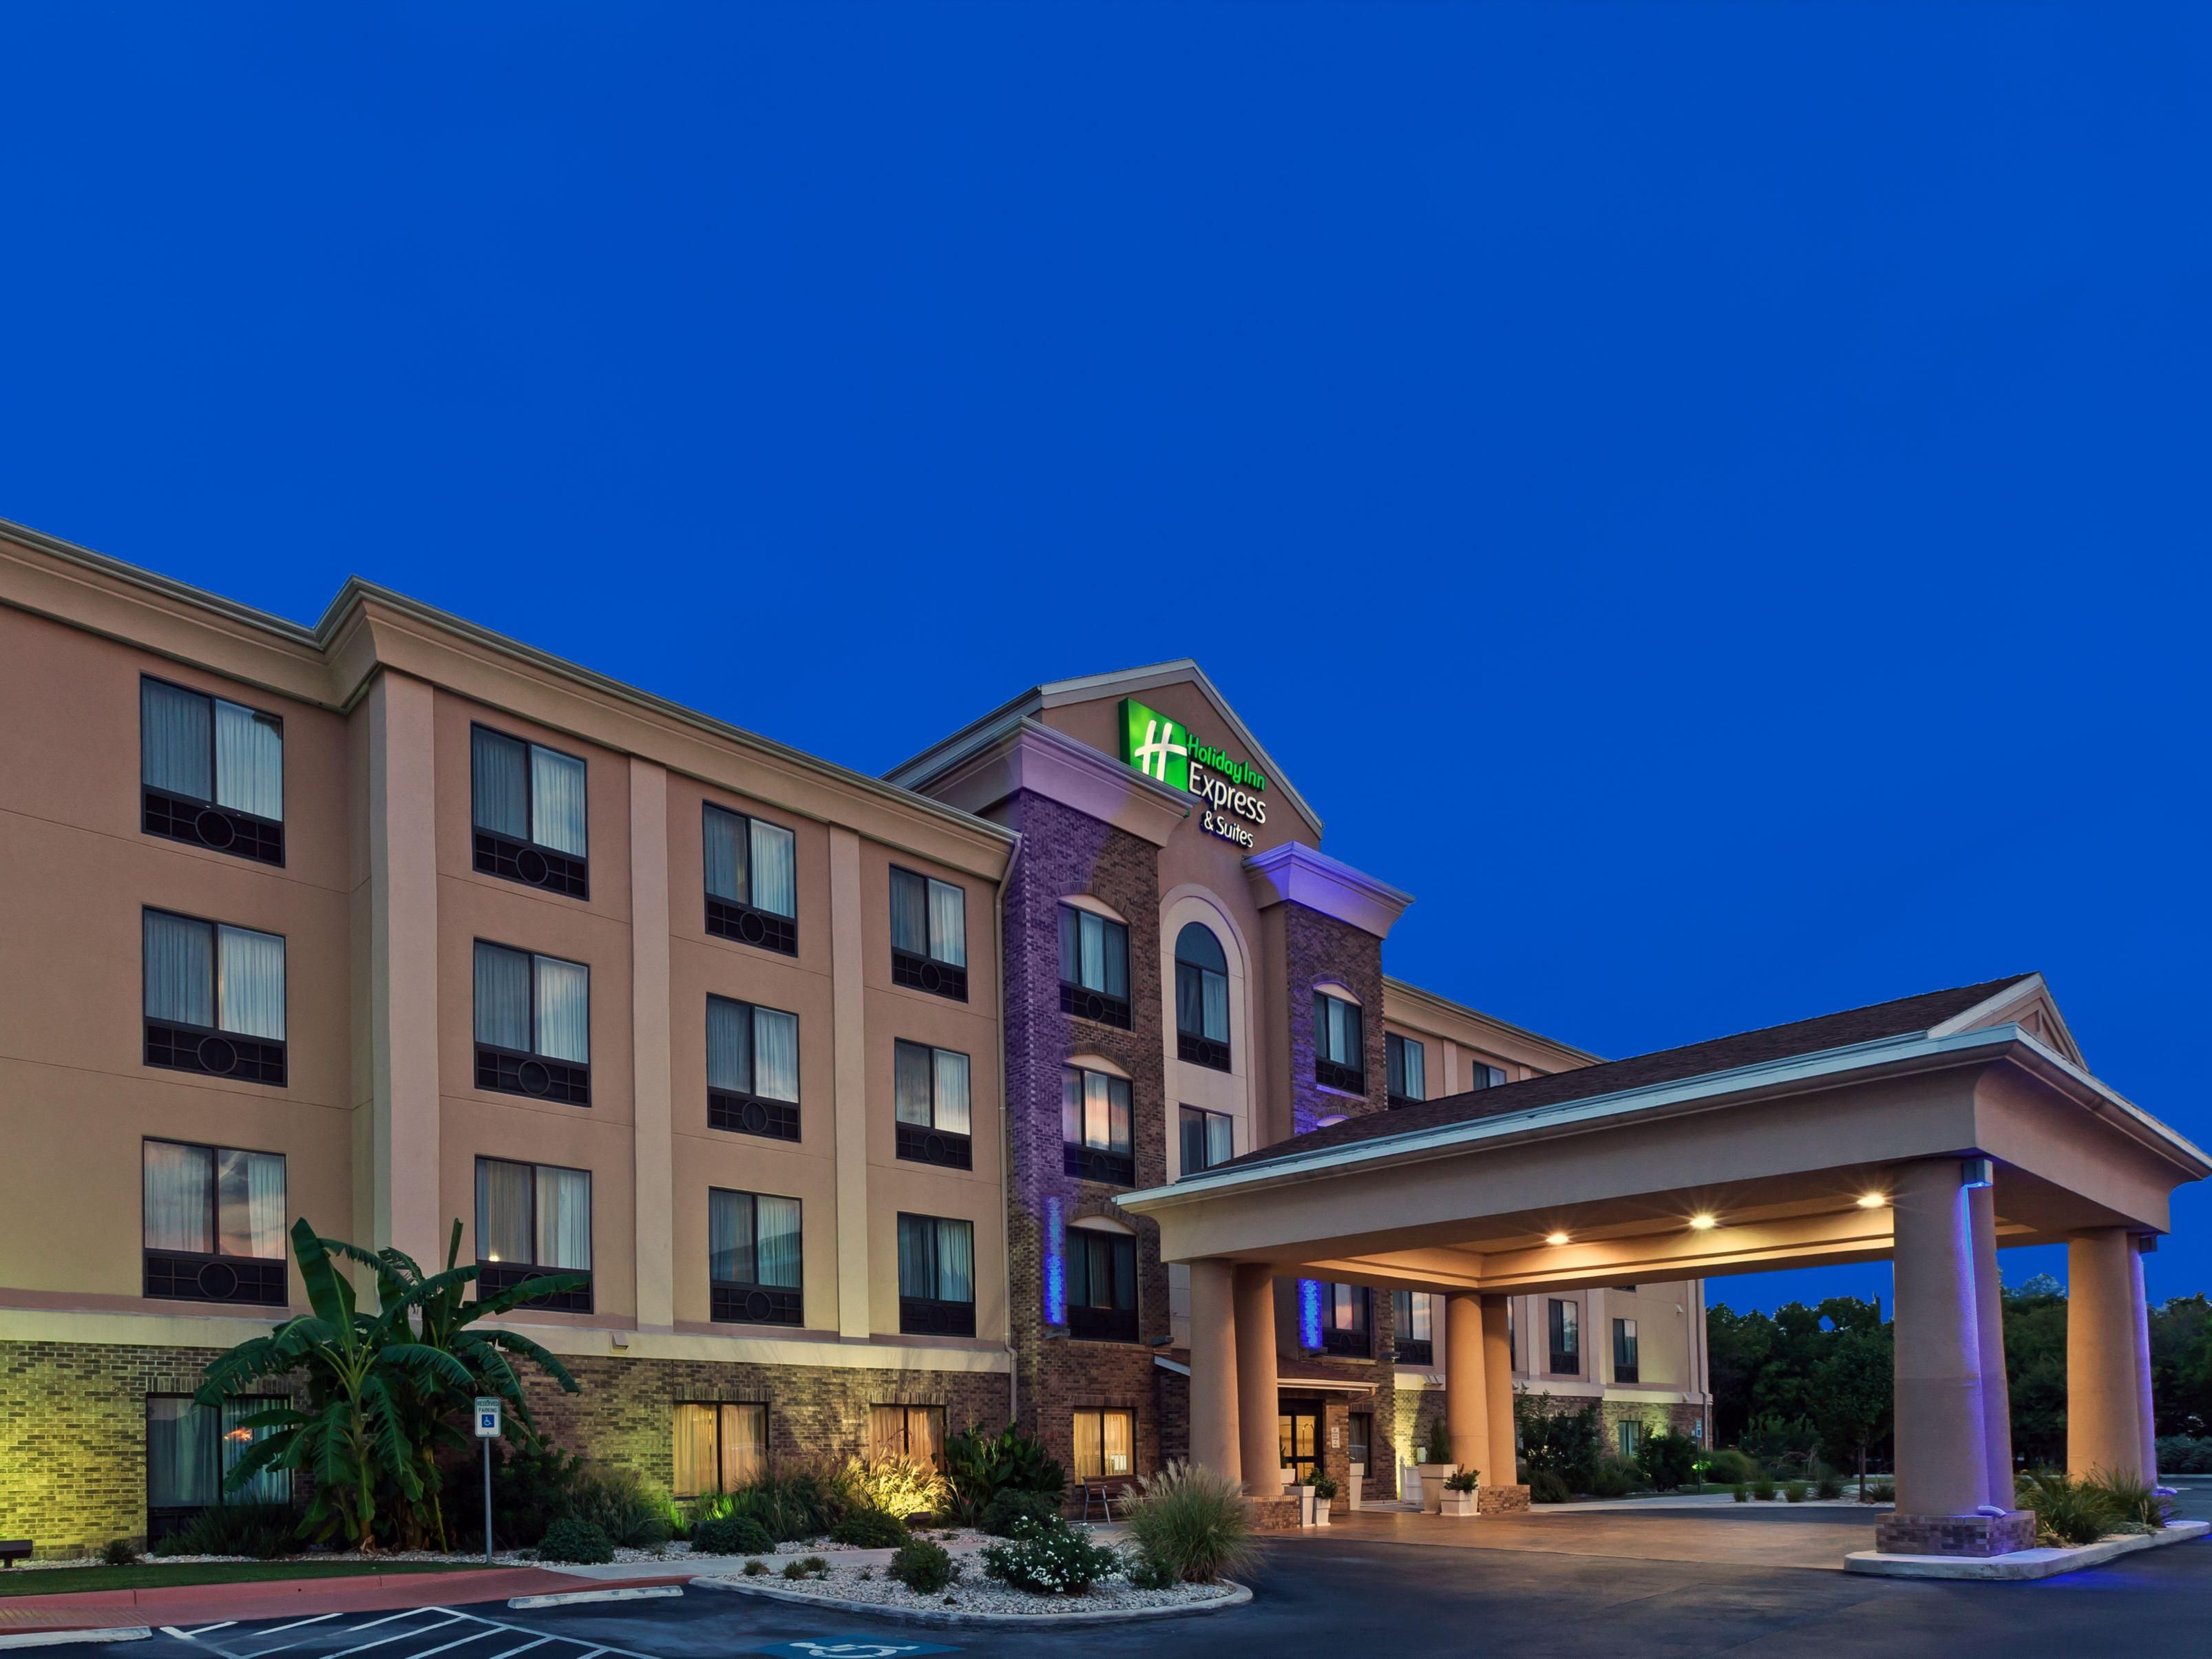 Holiday Inn Express Selma at dusk